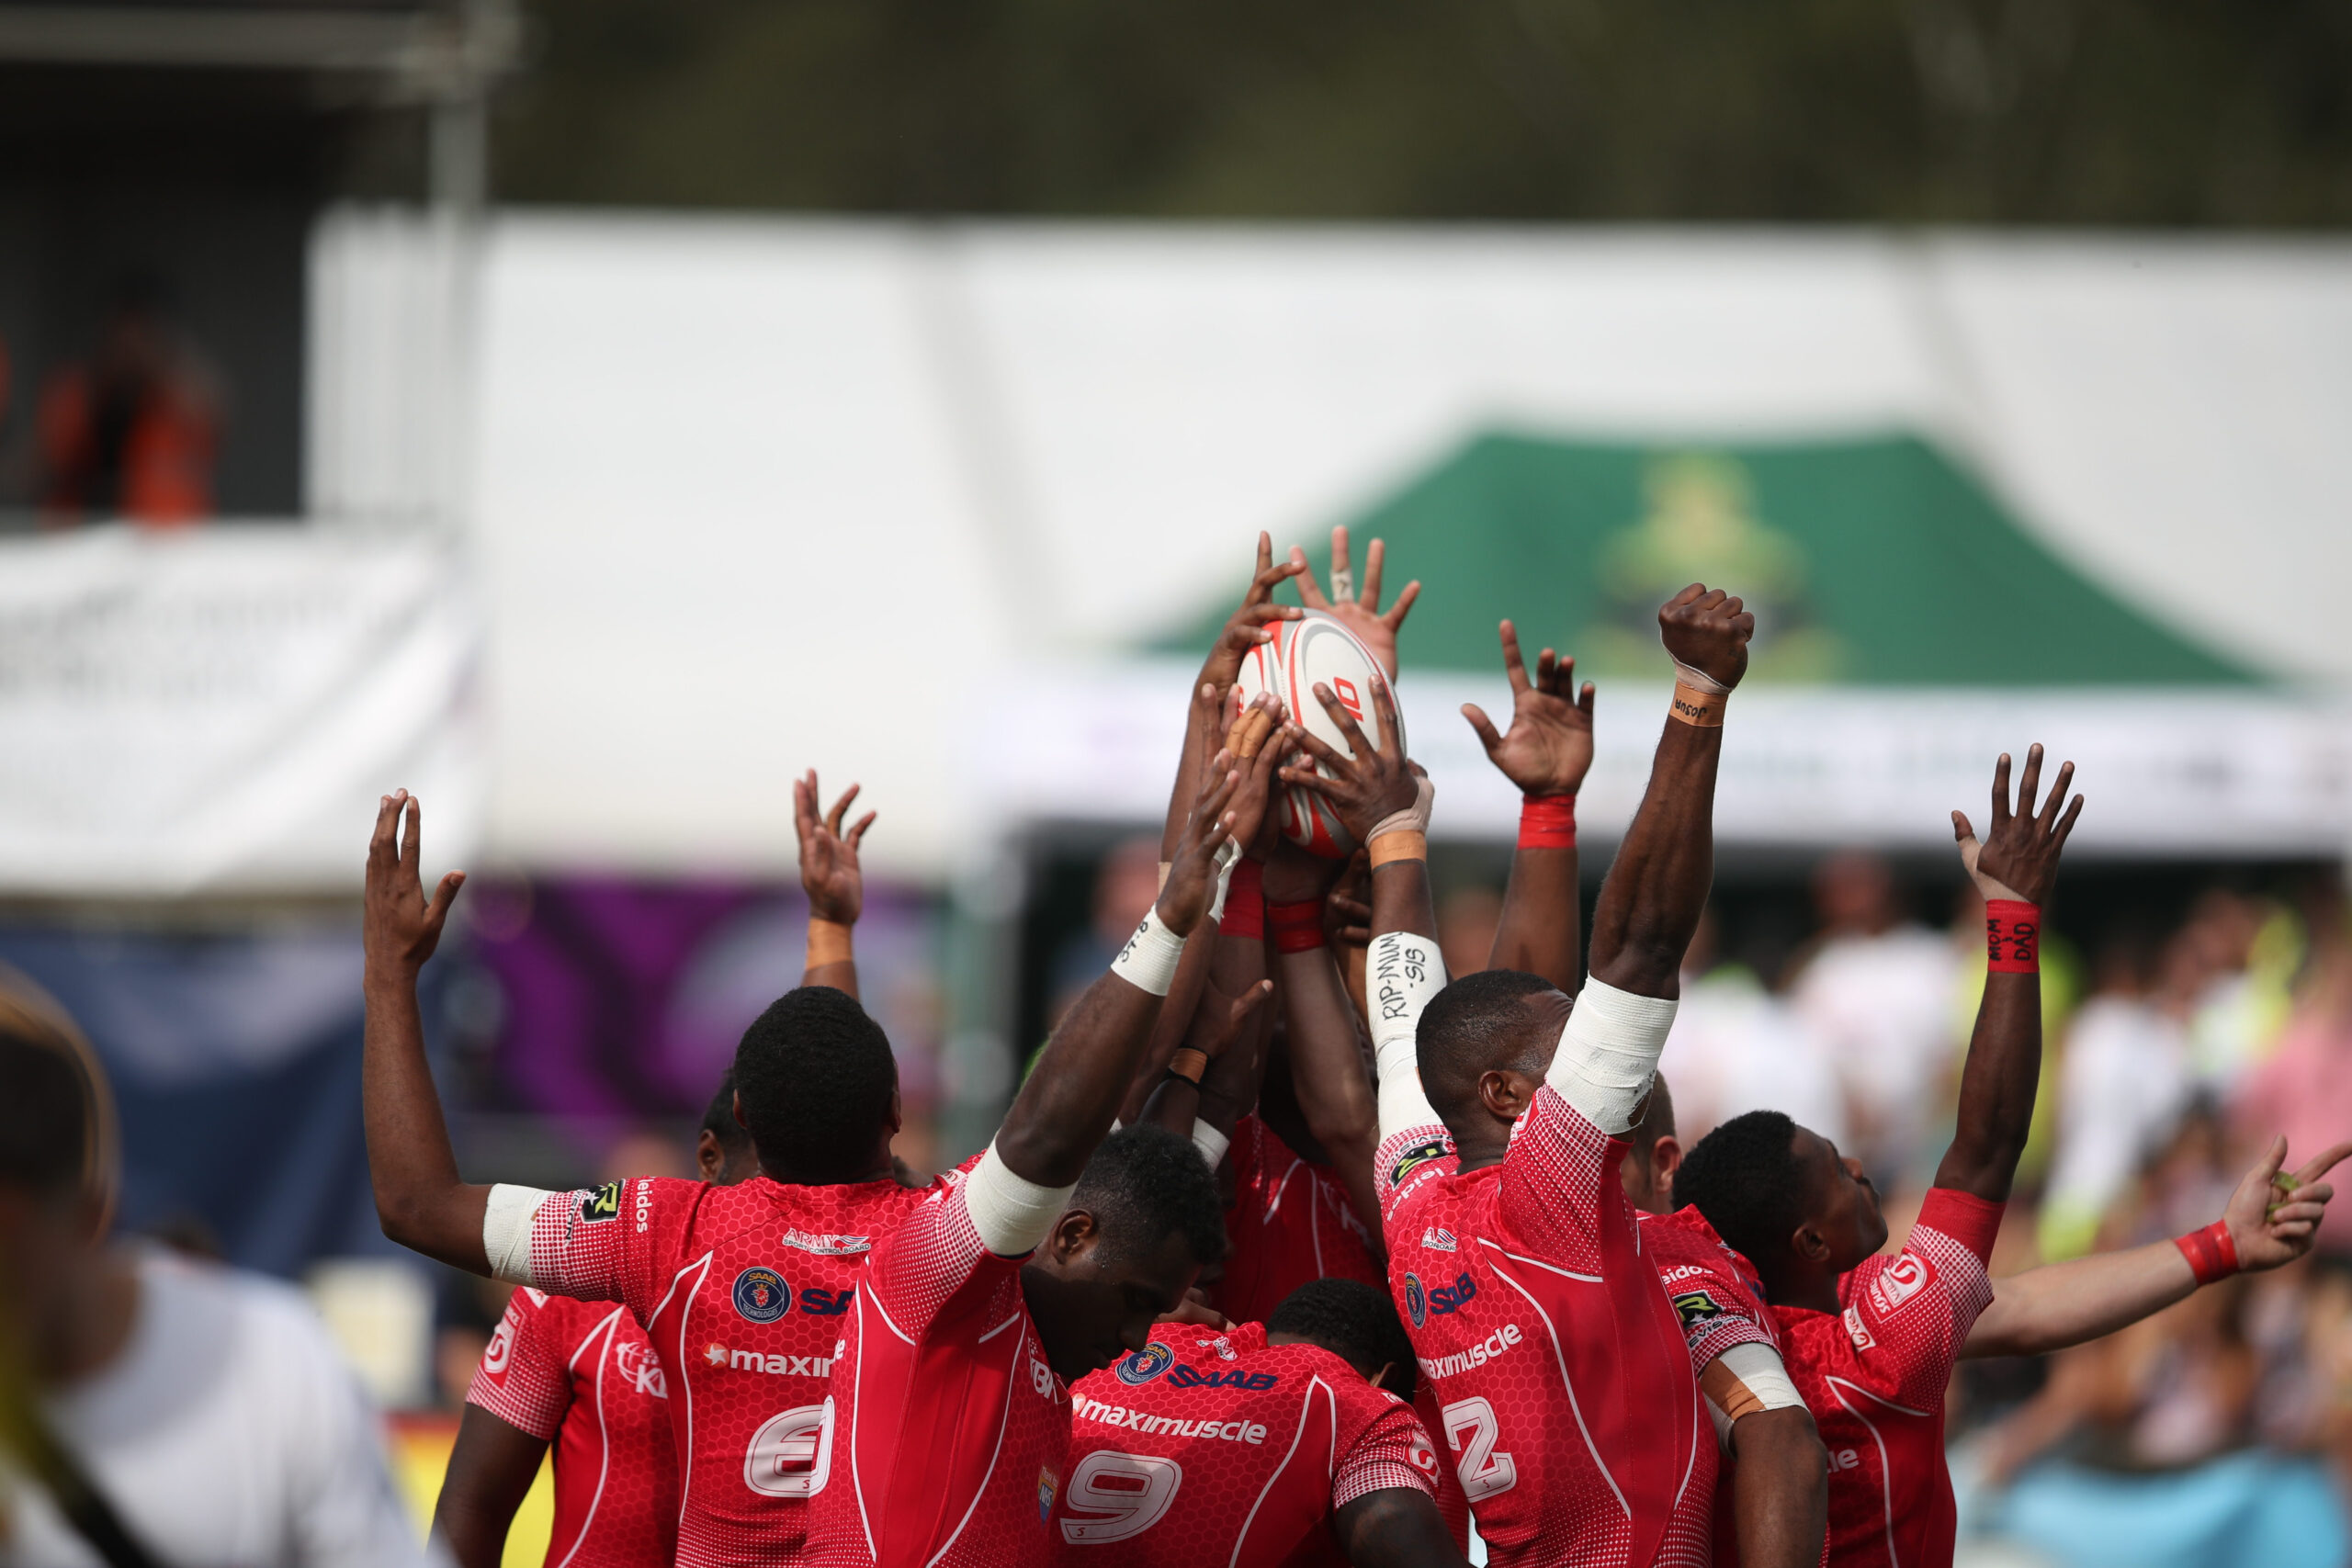 More finals for red shirt Sevens teams